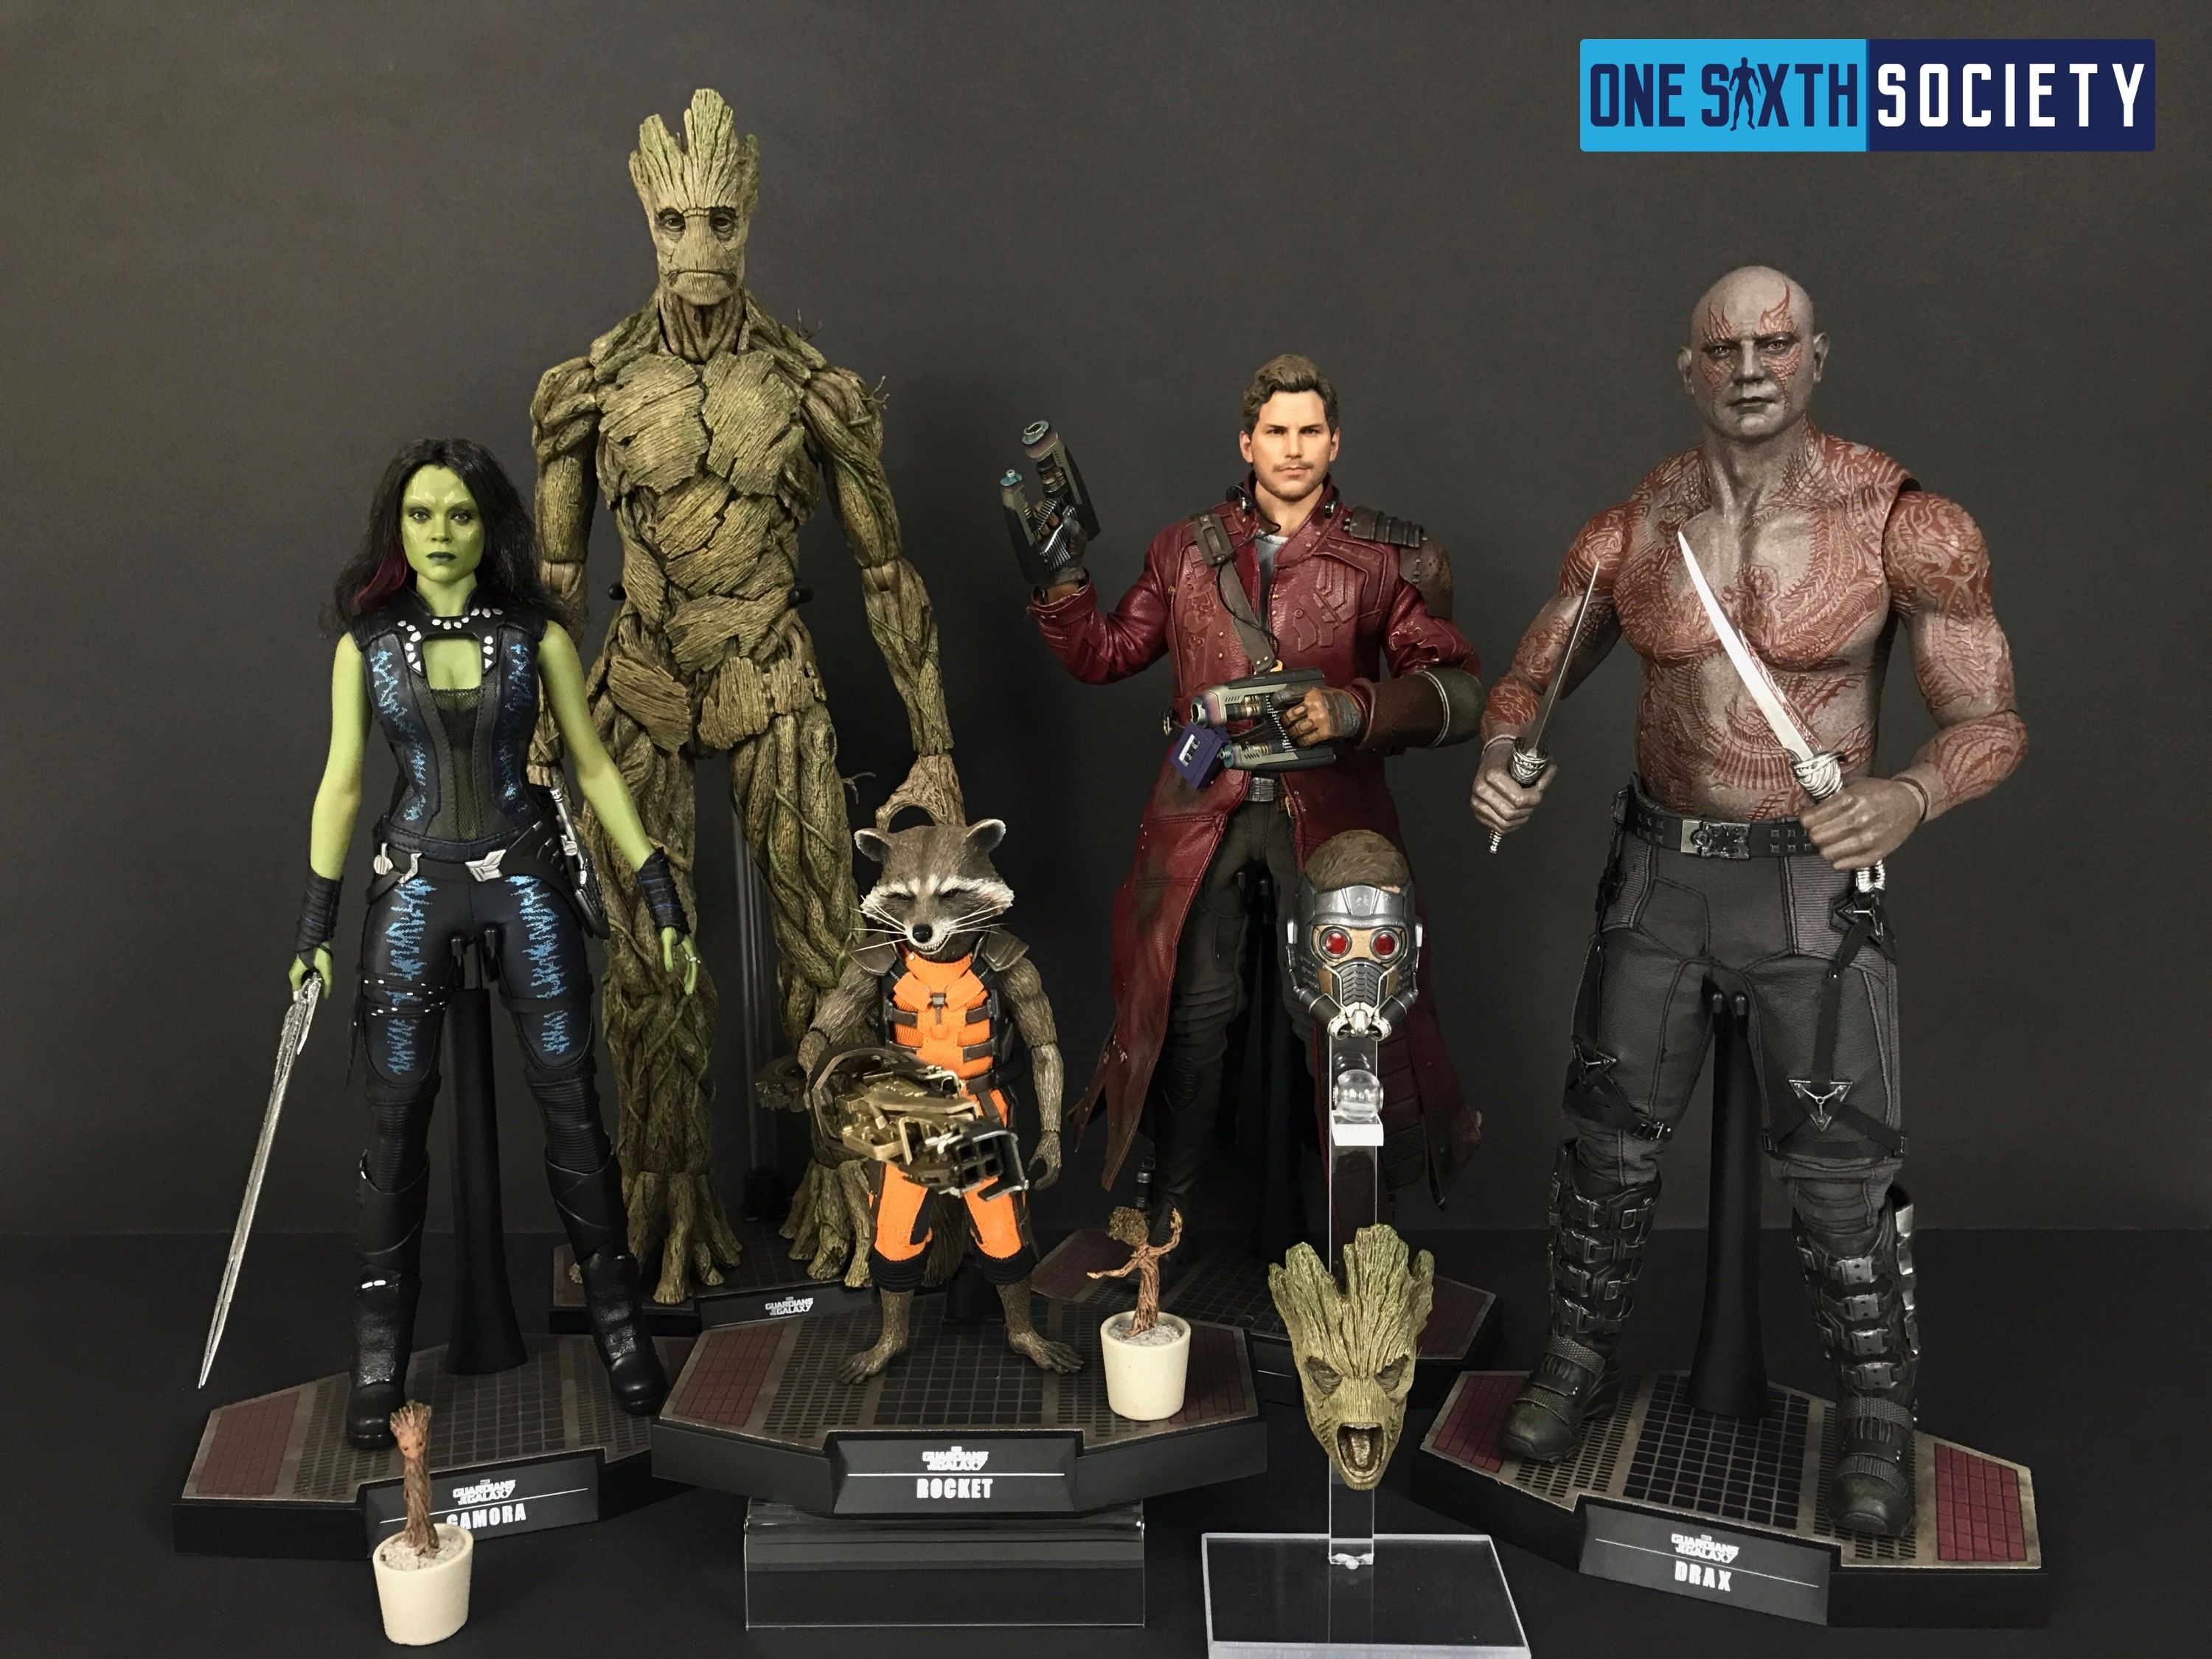 Hot Toys Drax Review One Sixth Society